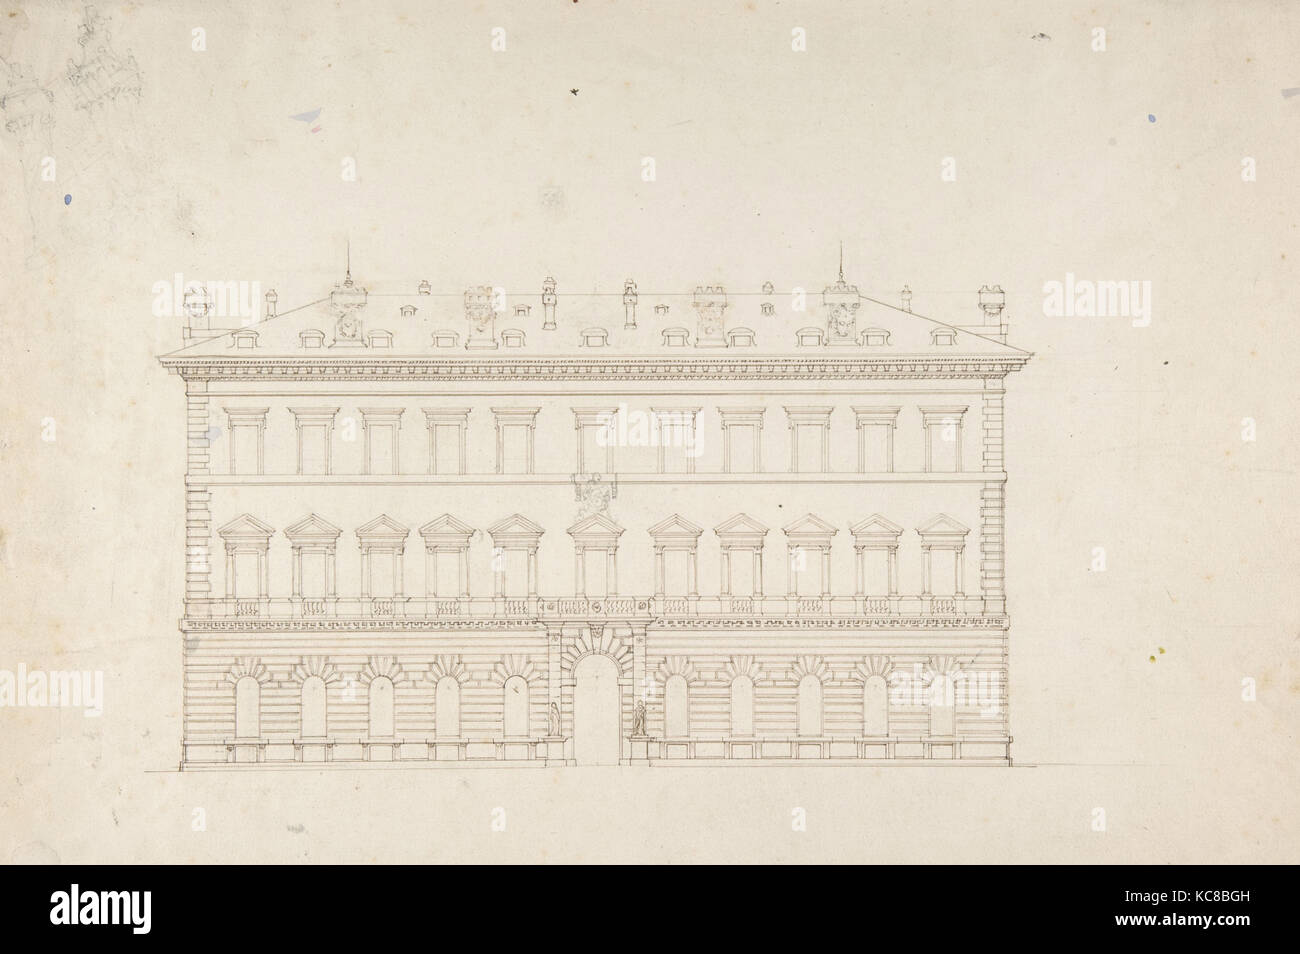 Design for a Public Building in the Italian Renaissance Palazzo Style, Attributed to Sir Charles Barry, ca. 1840 - Stock Image